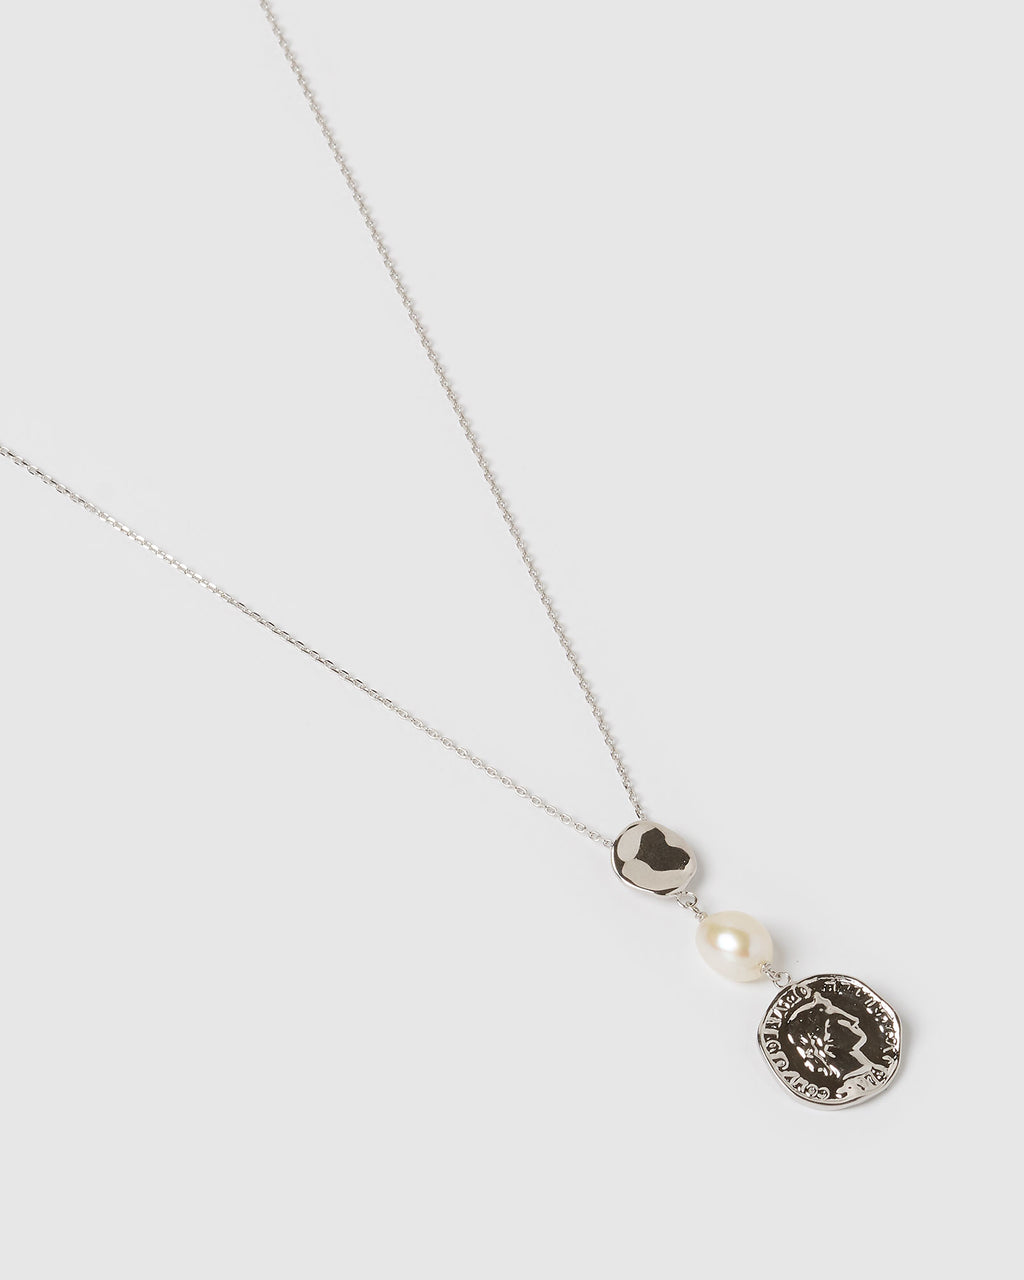 Izoa Fortune Necklace Silver Freshwater Pearl